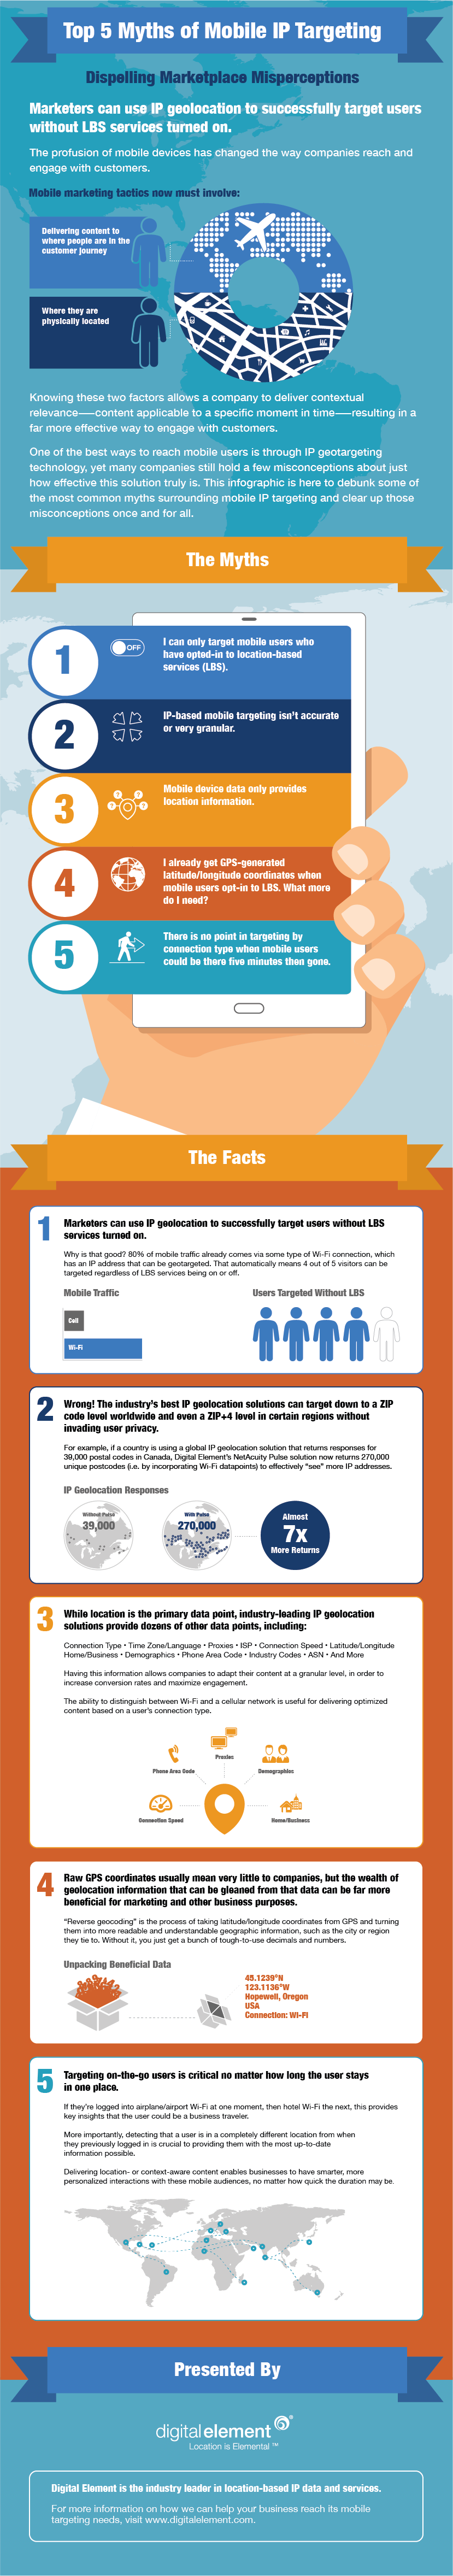 Infographic: Top 5 Myths of Mobile IP Targeting